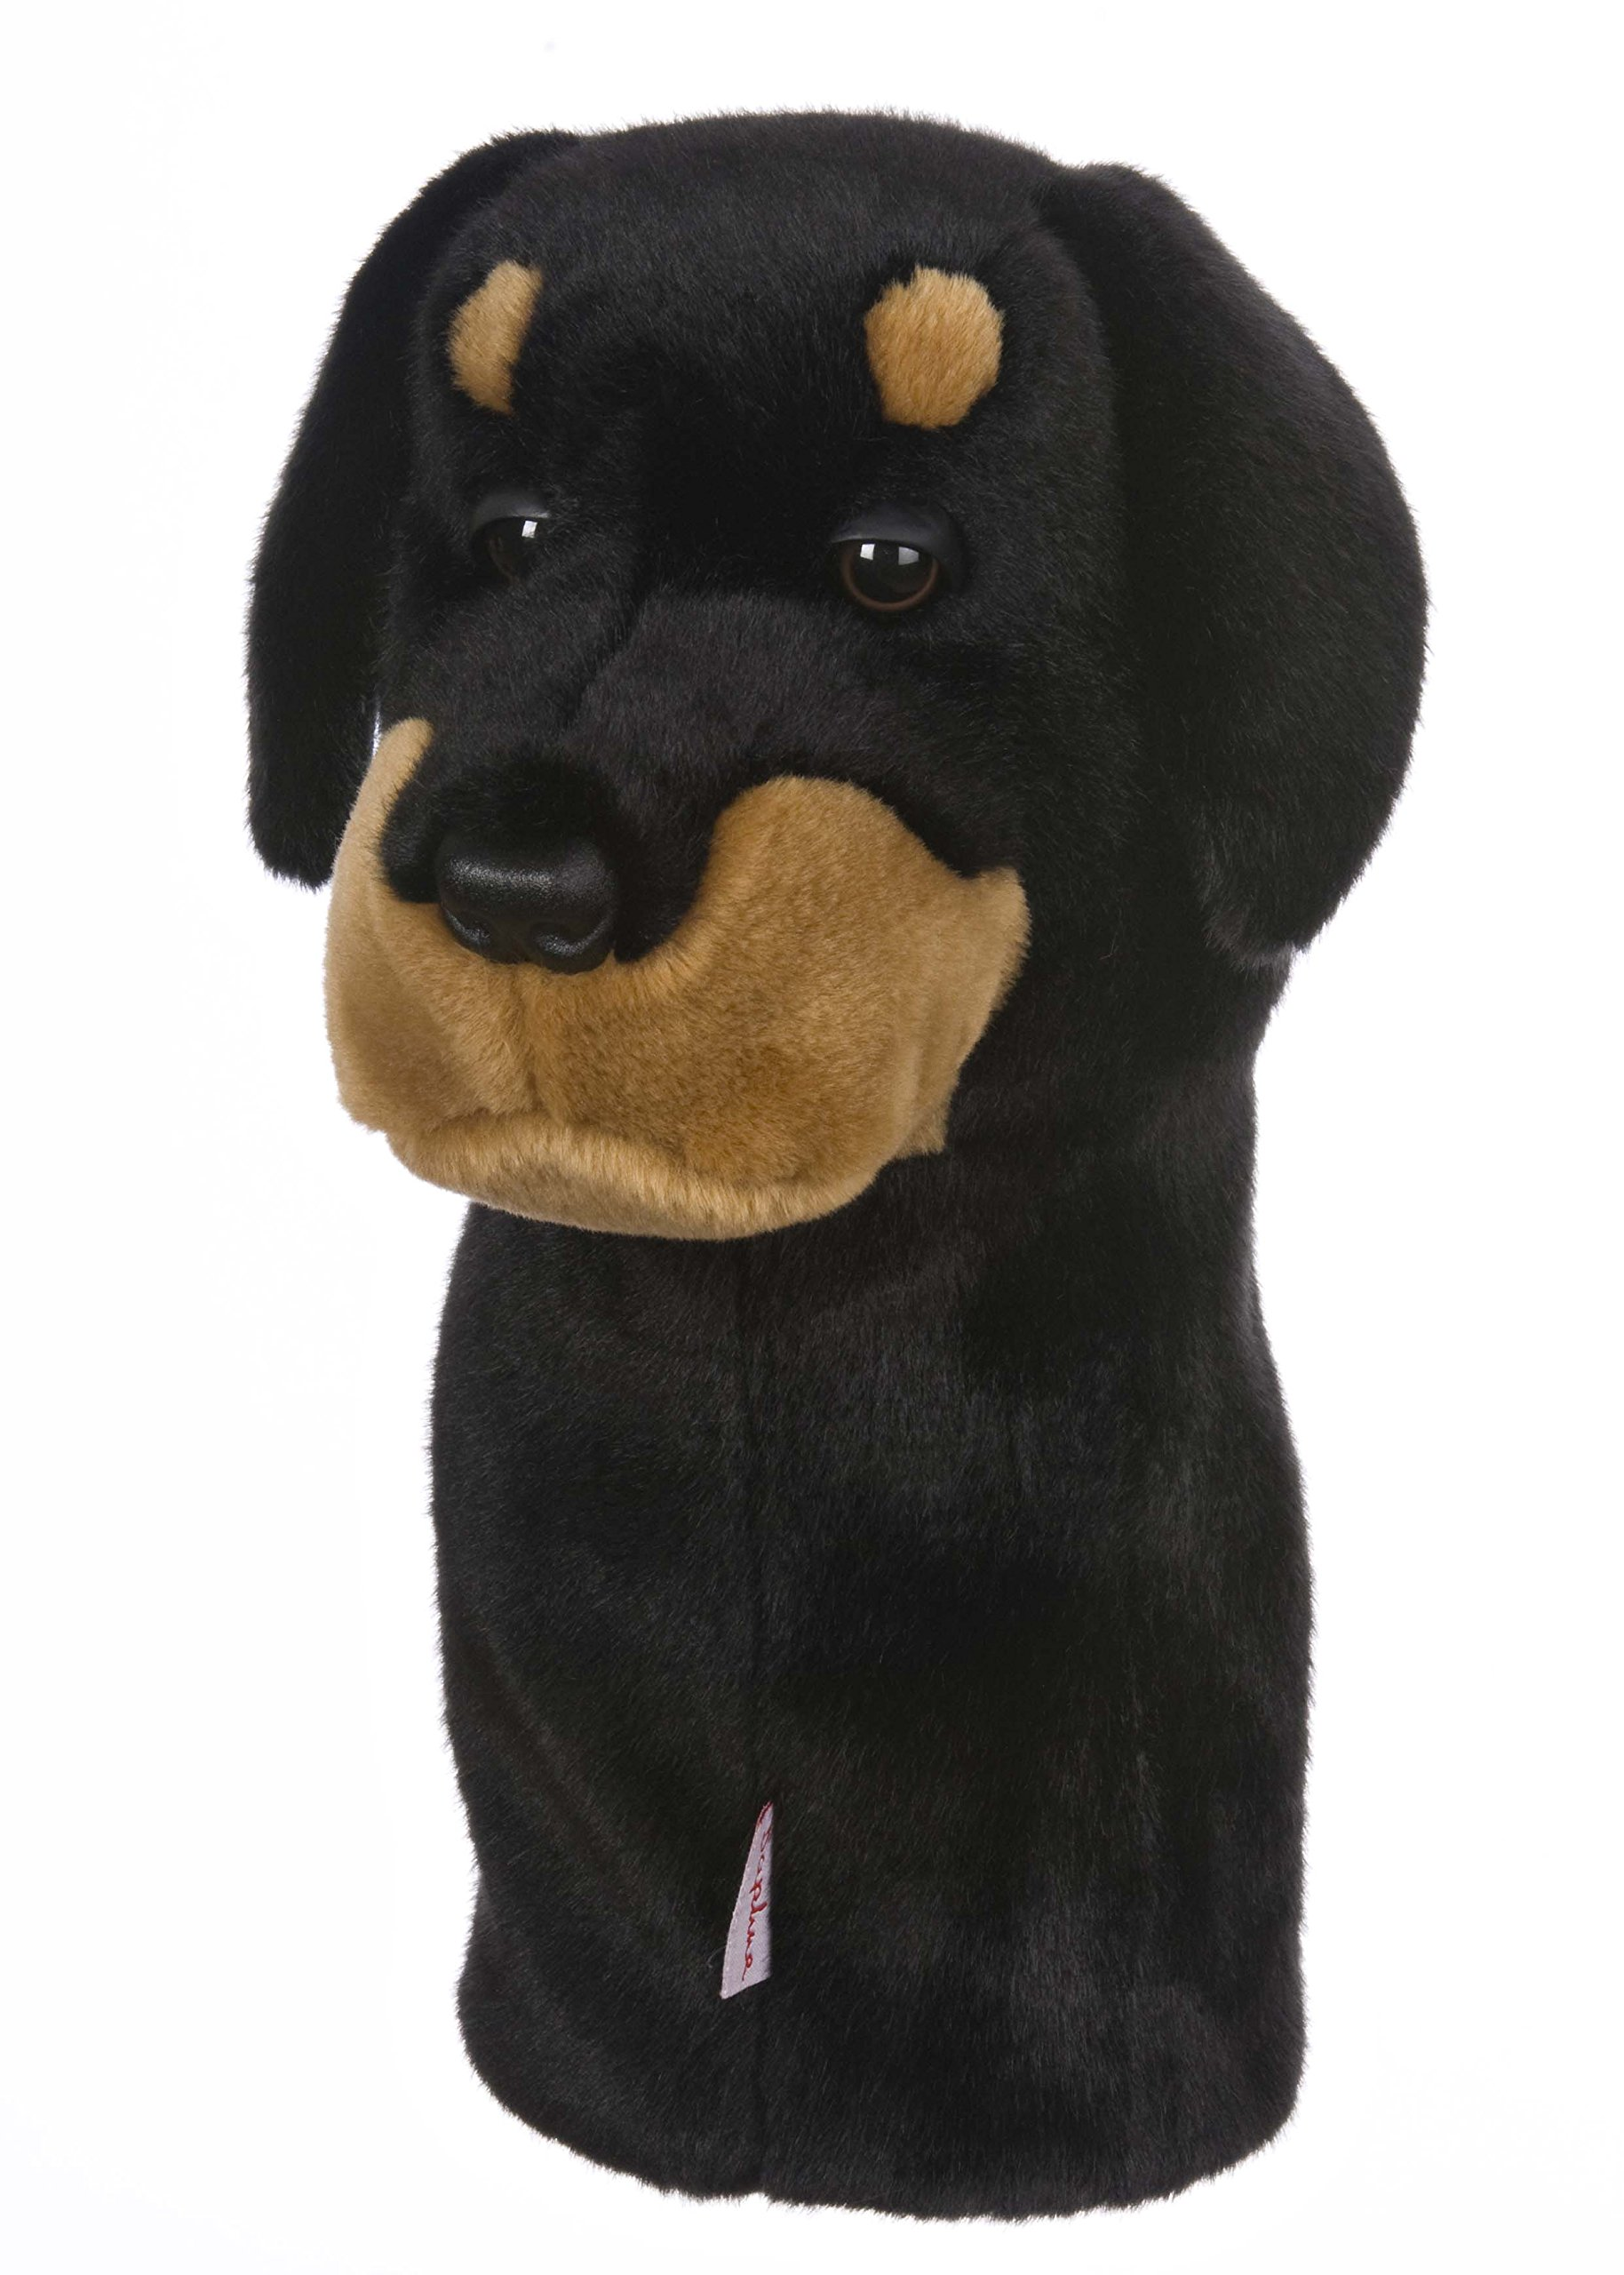 Oversized Rottweiller Golf Head Cover by Big Head Golf (Image #1)